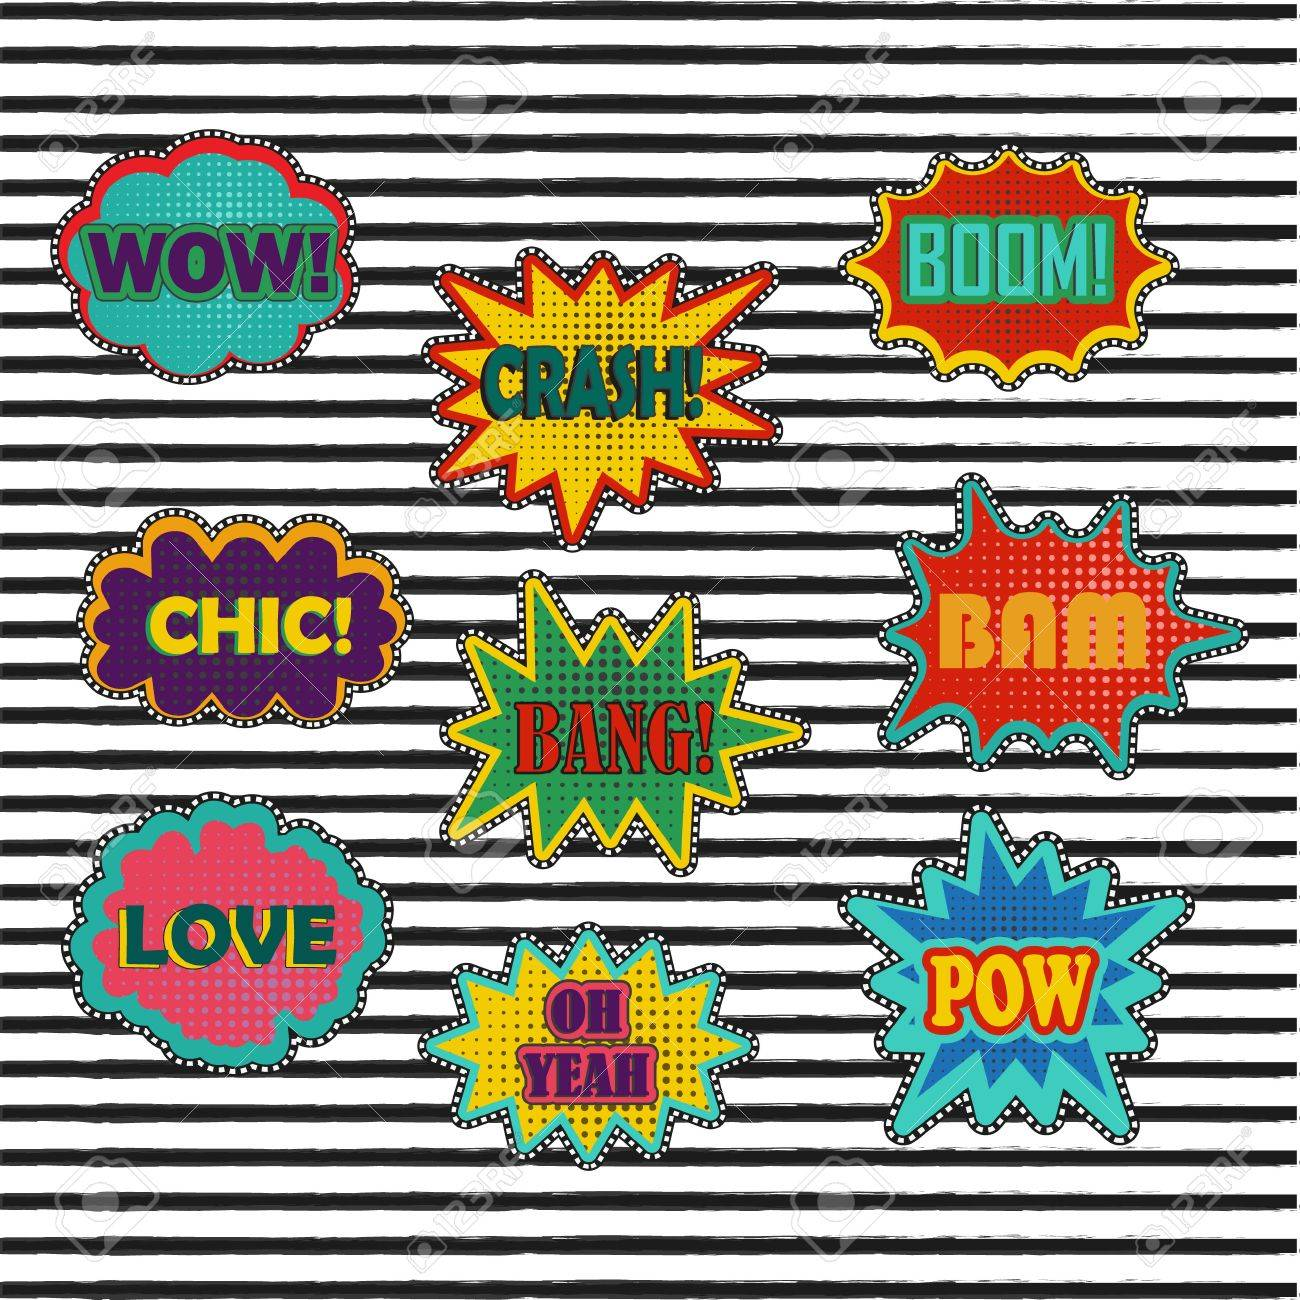 Comic patch sound effects in pop art style  Sound bubble speech